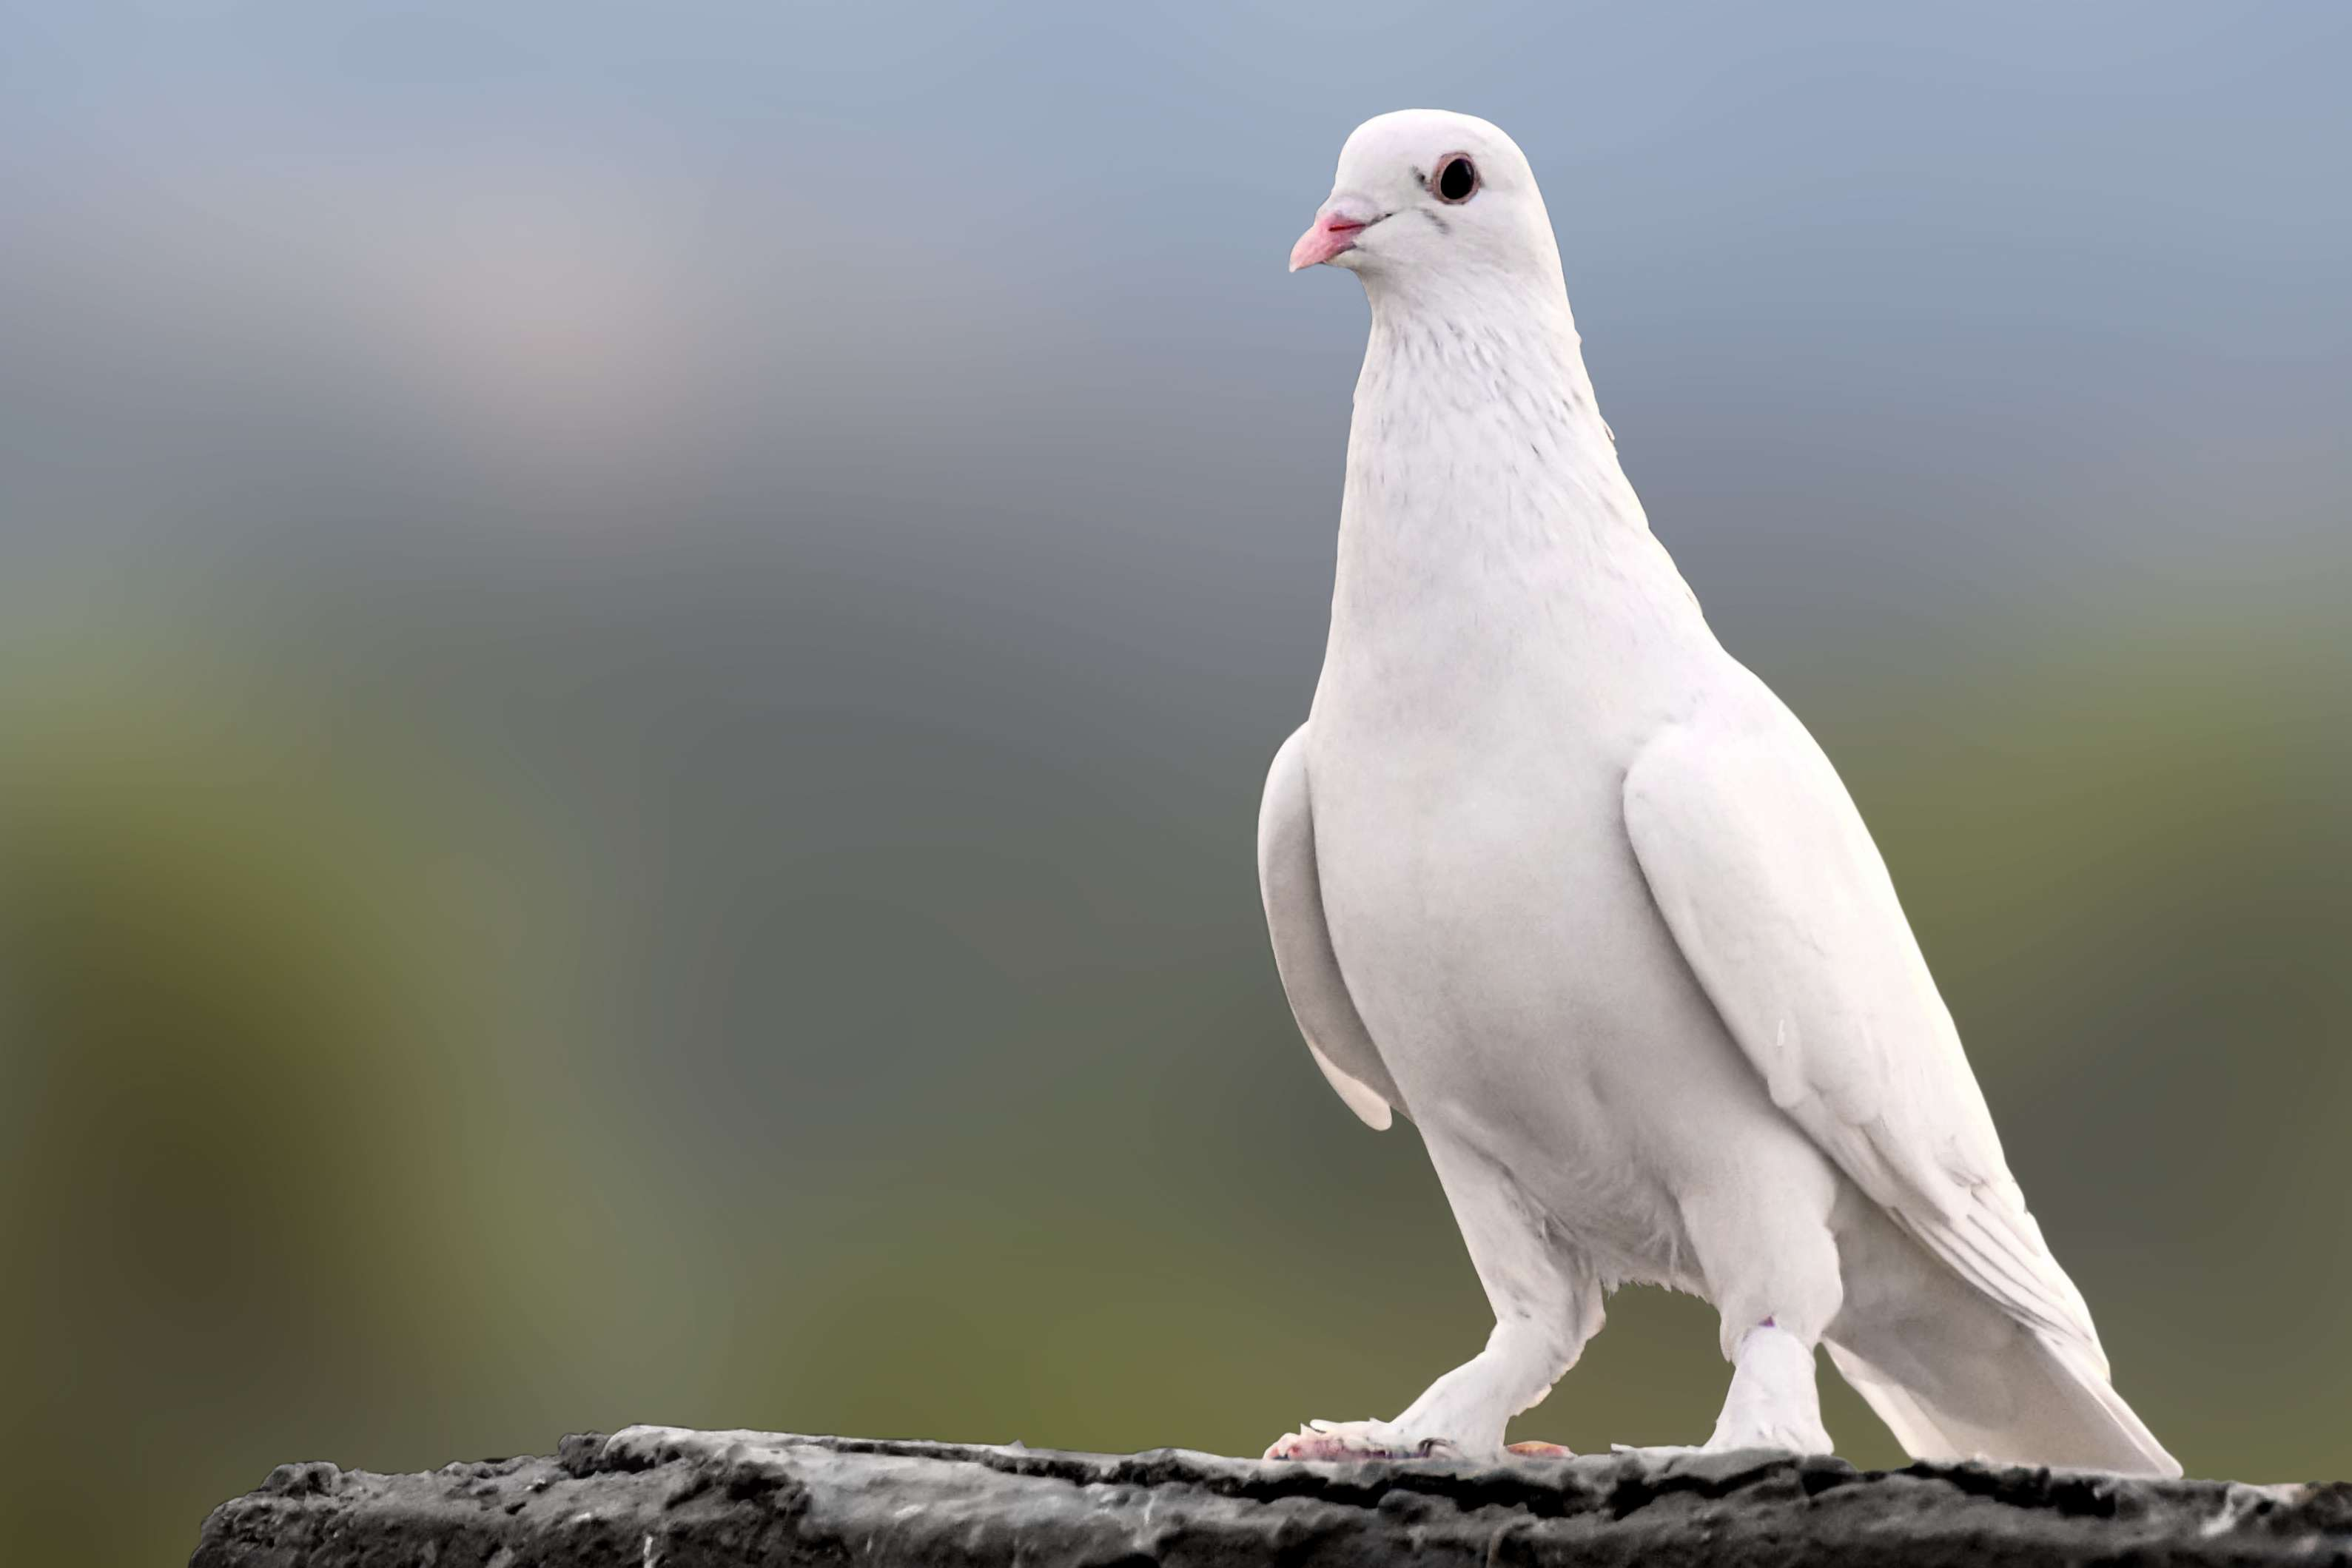 Close-Up Of Dove On Wall